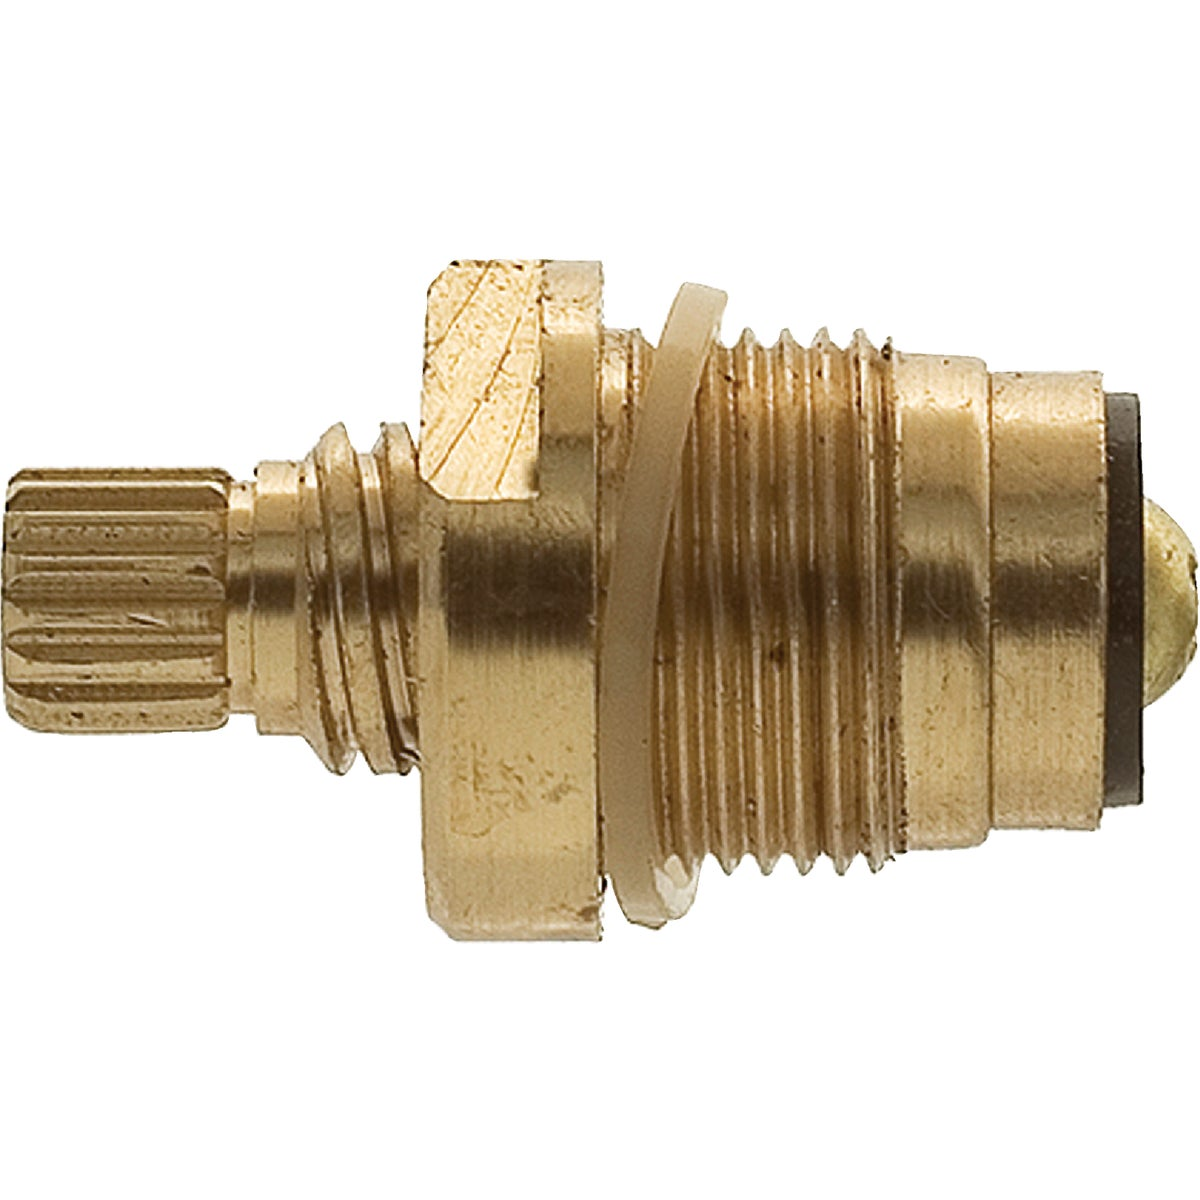 1C-7H CENTRAL BRASS STEM - 15083E by Danco Perfect Match